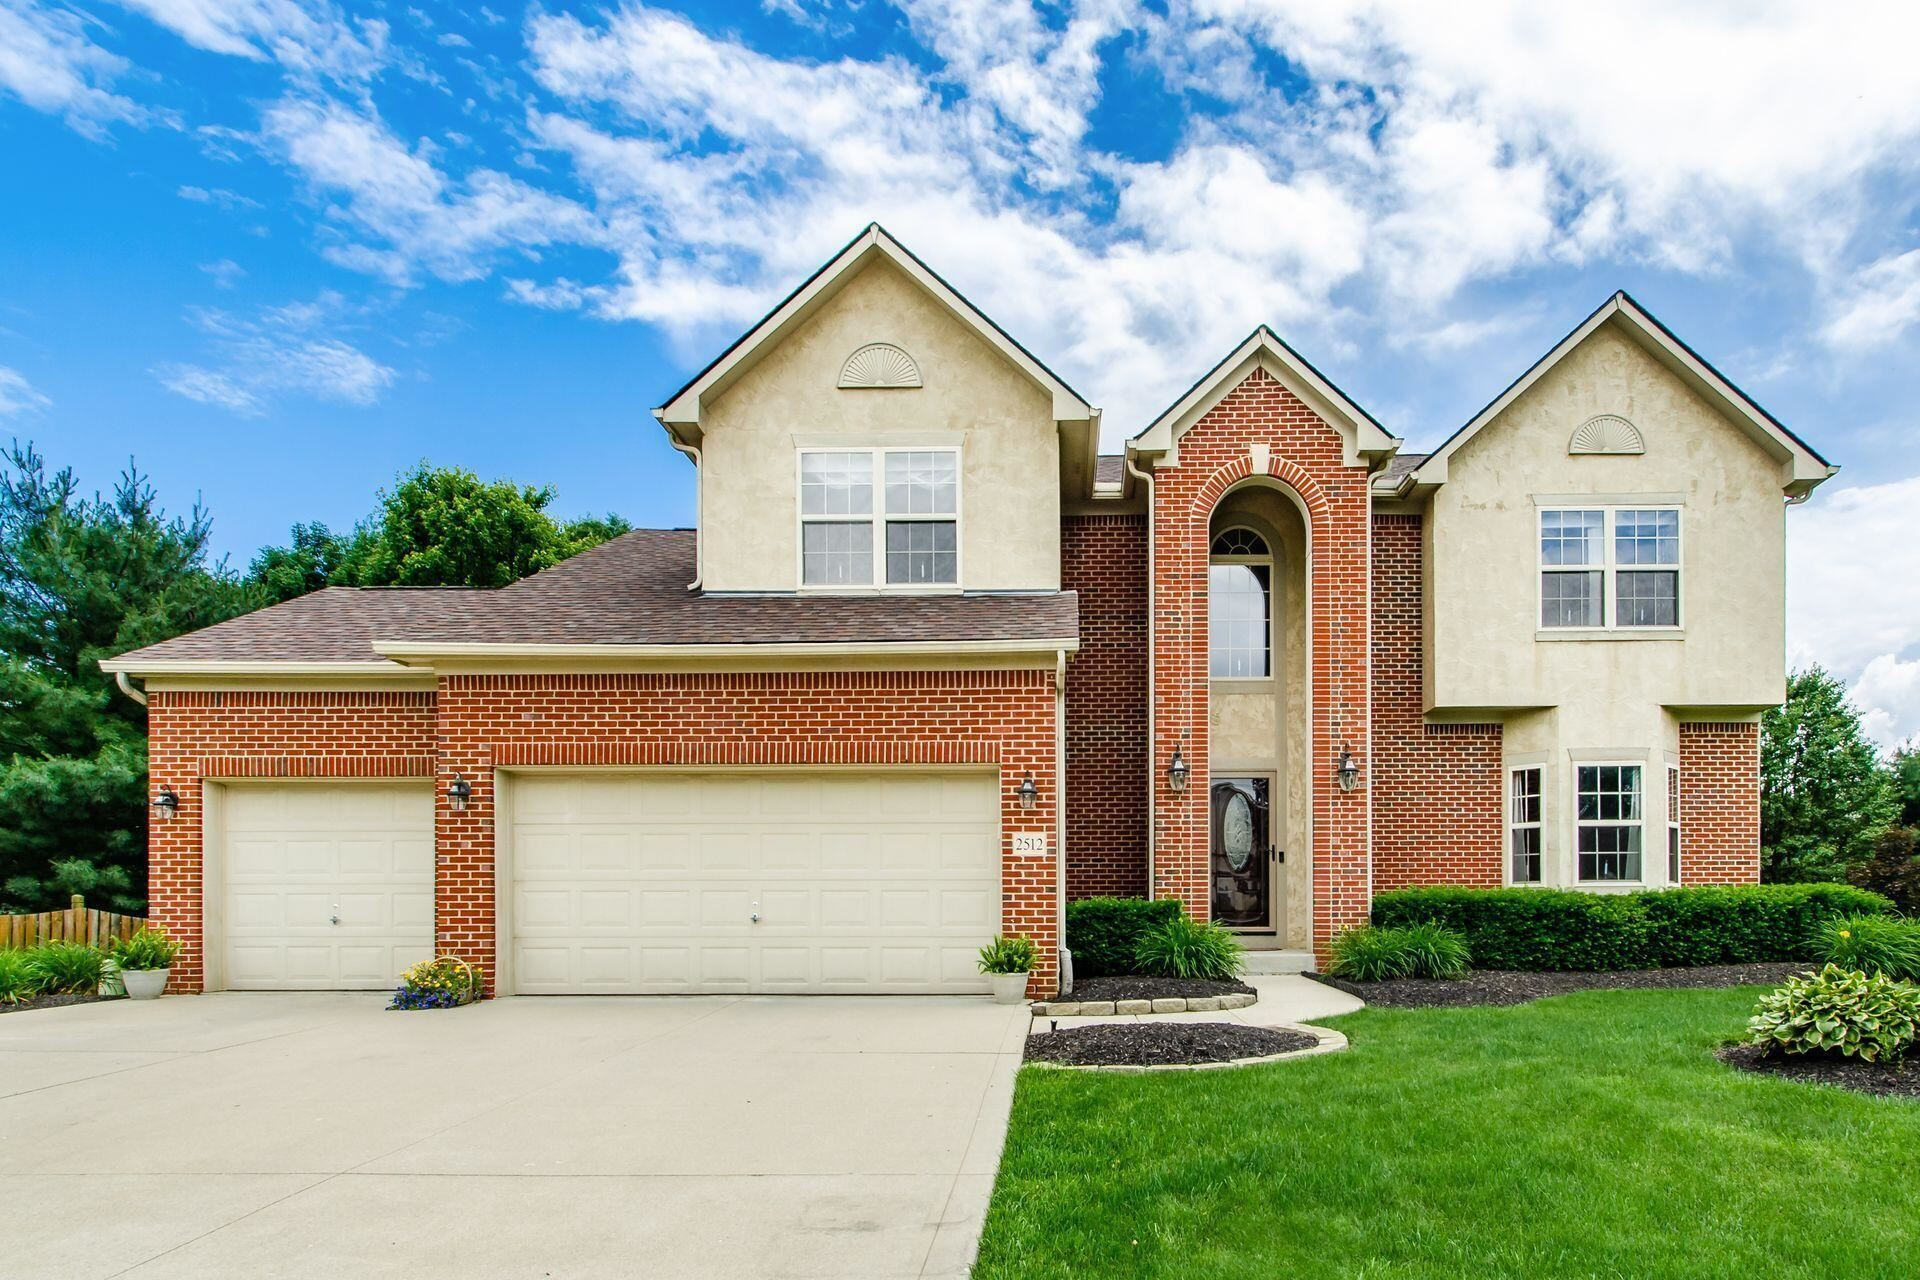 Photo for 2512 Maxwell Avenue, Lewis Center, OH 43035 (MLS # 221020617)